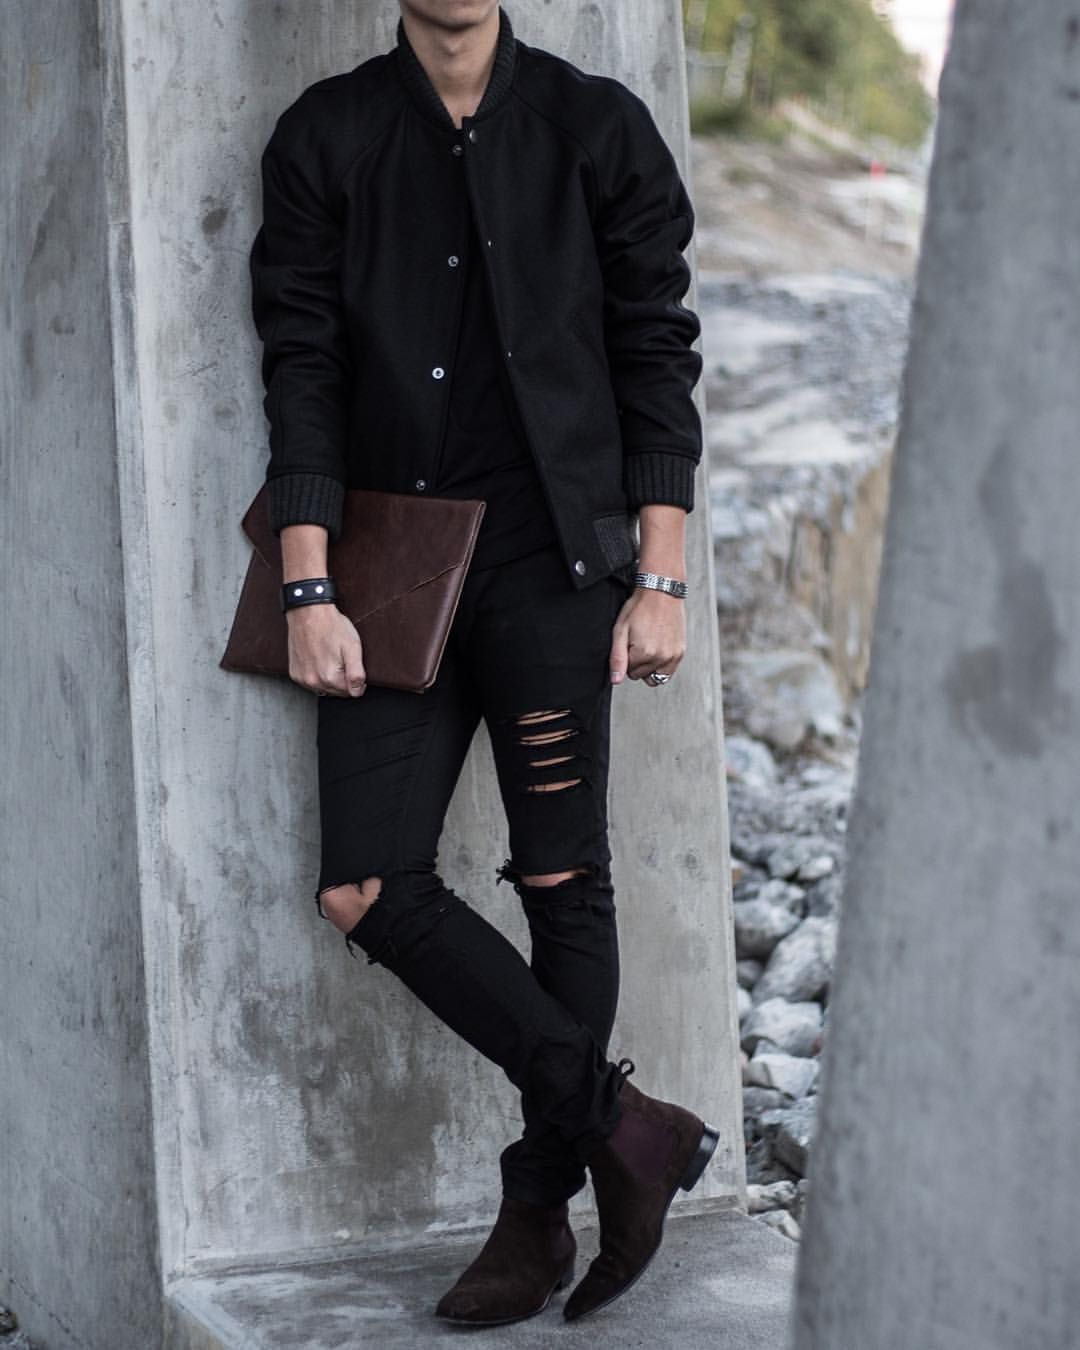 Hampus On Instagram Hampus Style A P C Wool Bomber Jacket River Island Stylish Mens Outfits Men Fashion Casual Outfits Mens Clothing Styles [ 1350 x 1080 Pixel ]